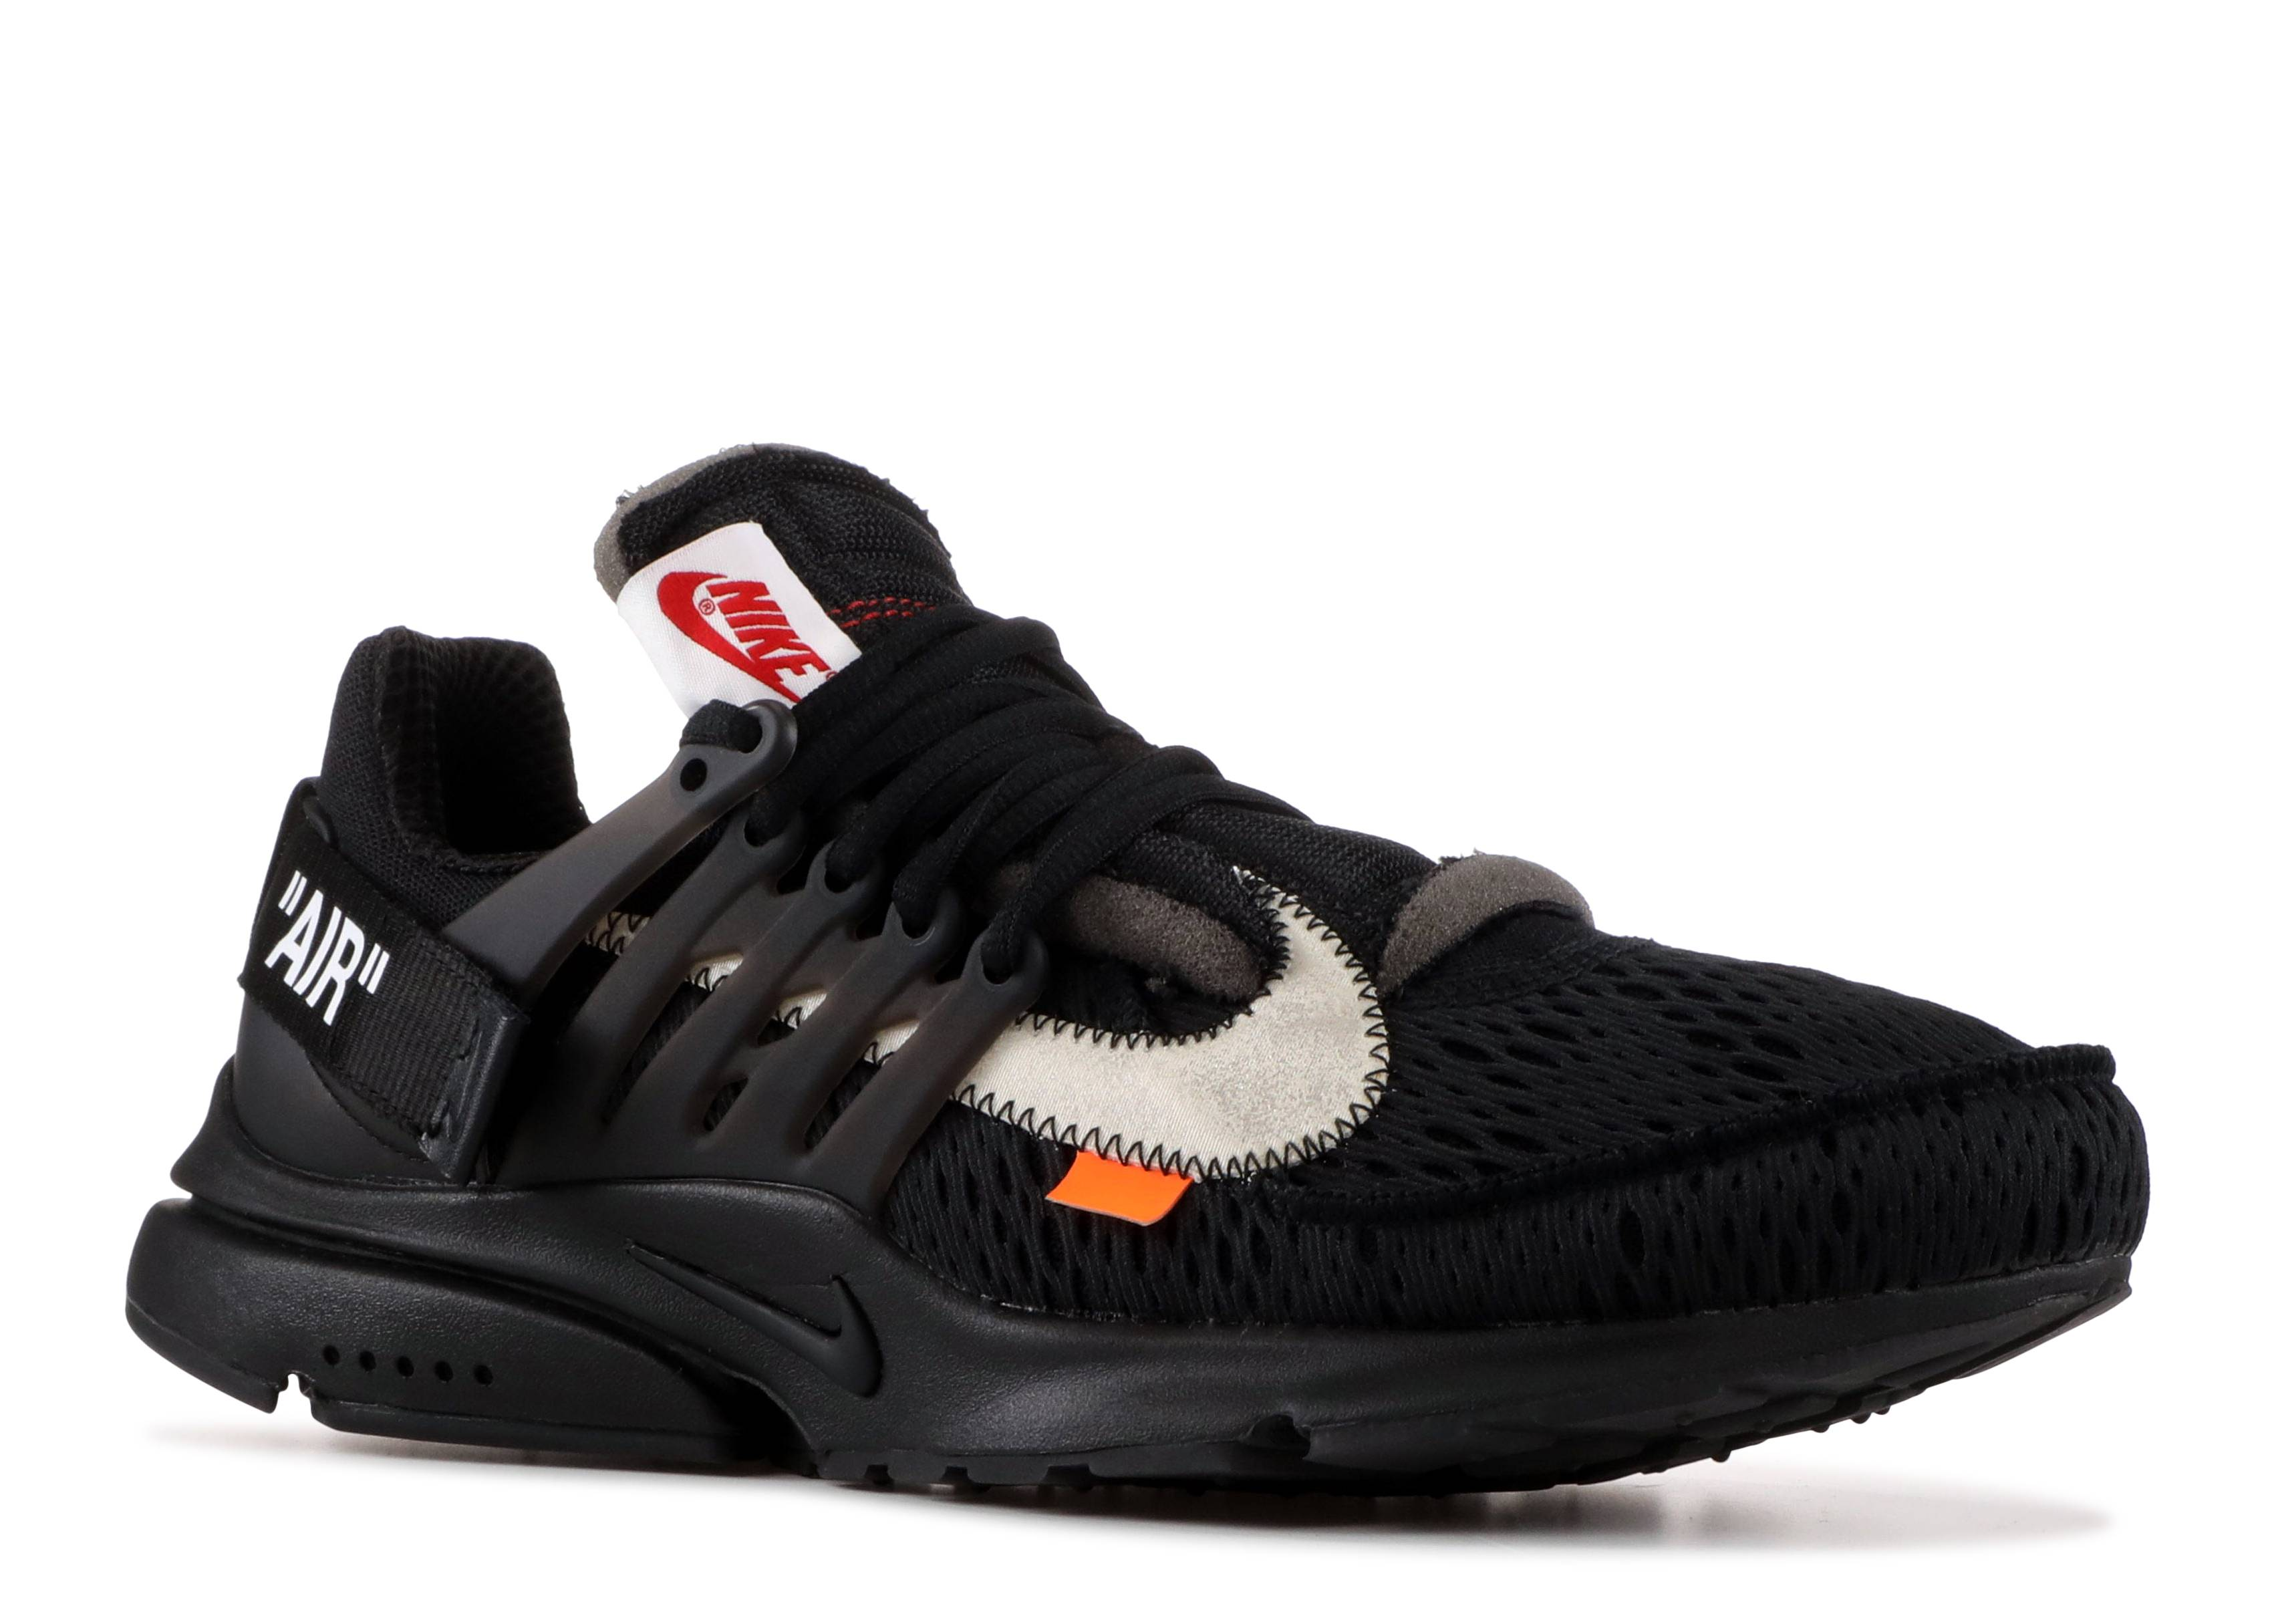 newest beauty look for The 10: Nike Air Presto